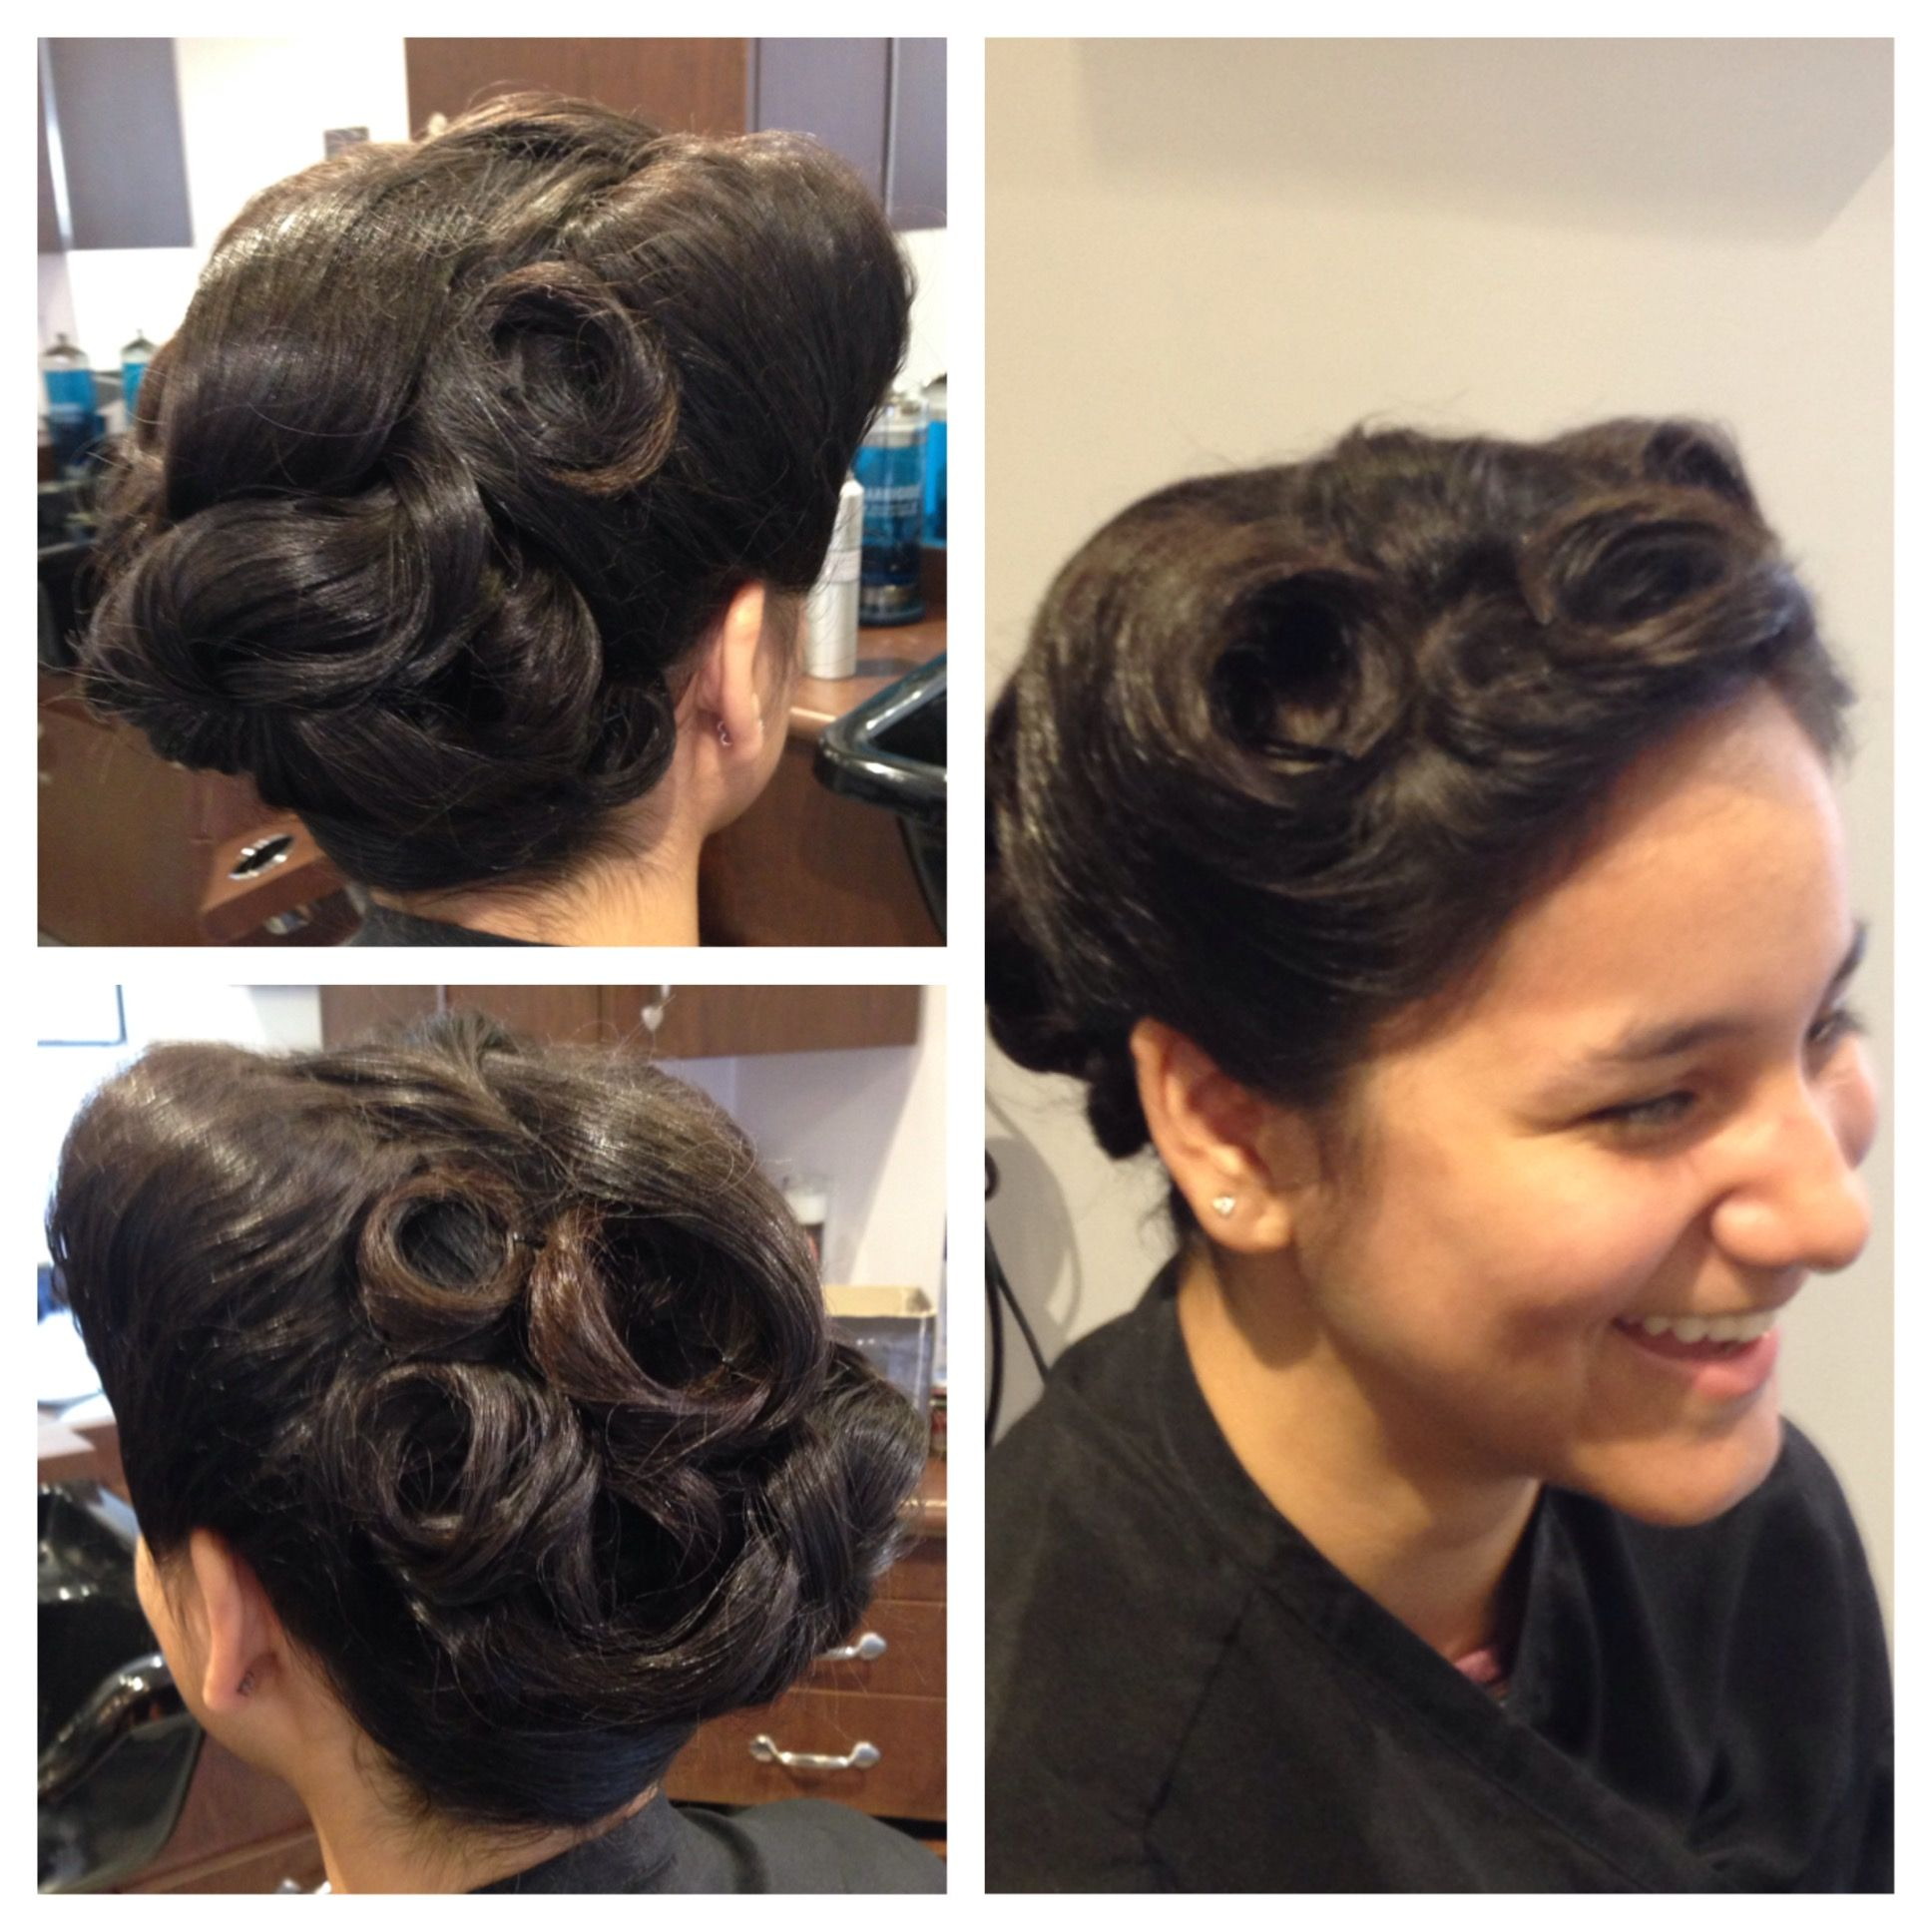 Vintage inspired up do by constance powell of lola and roxyus hair